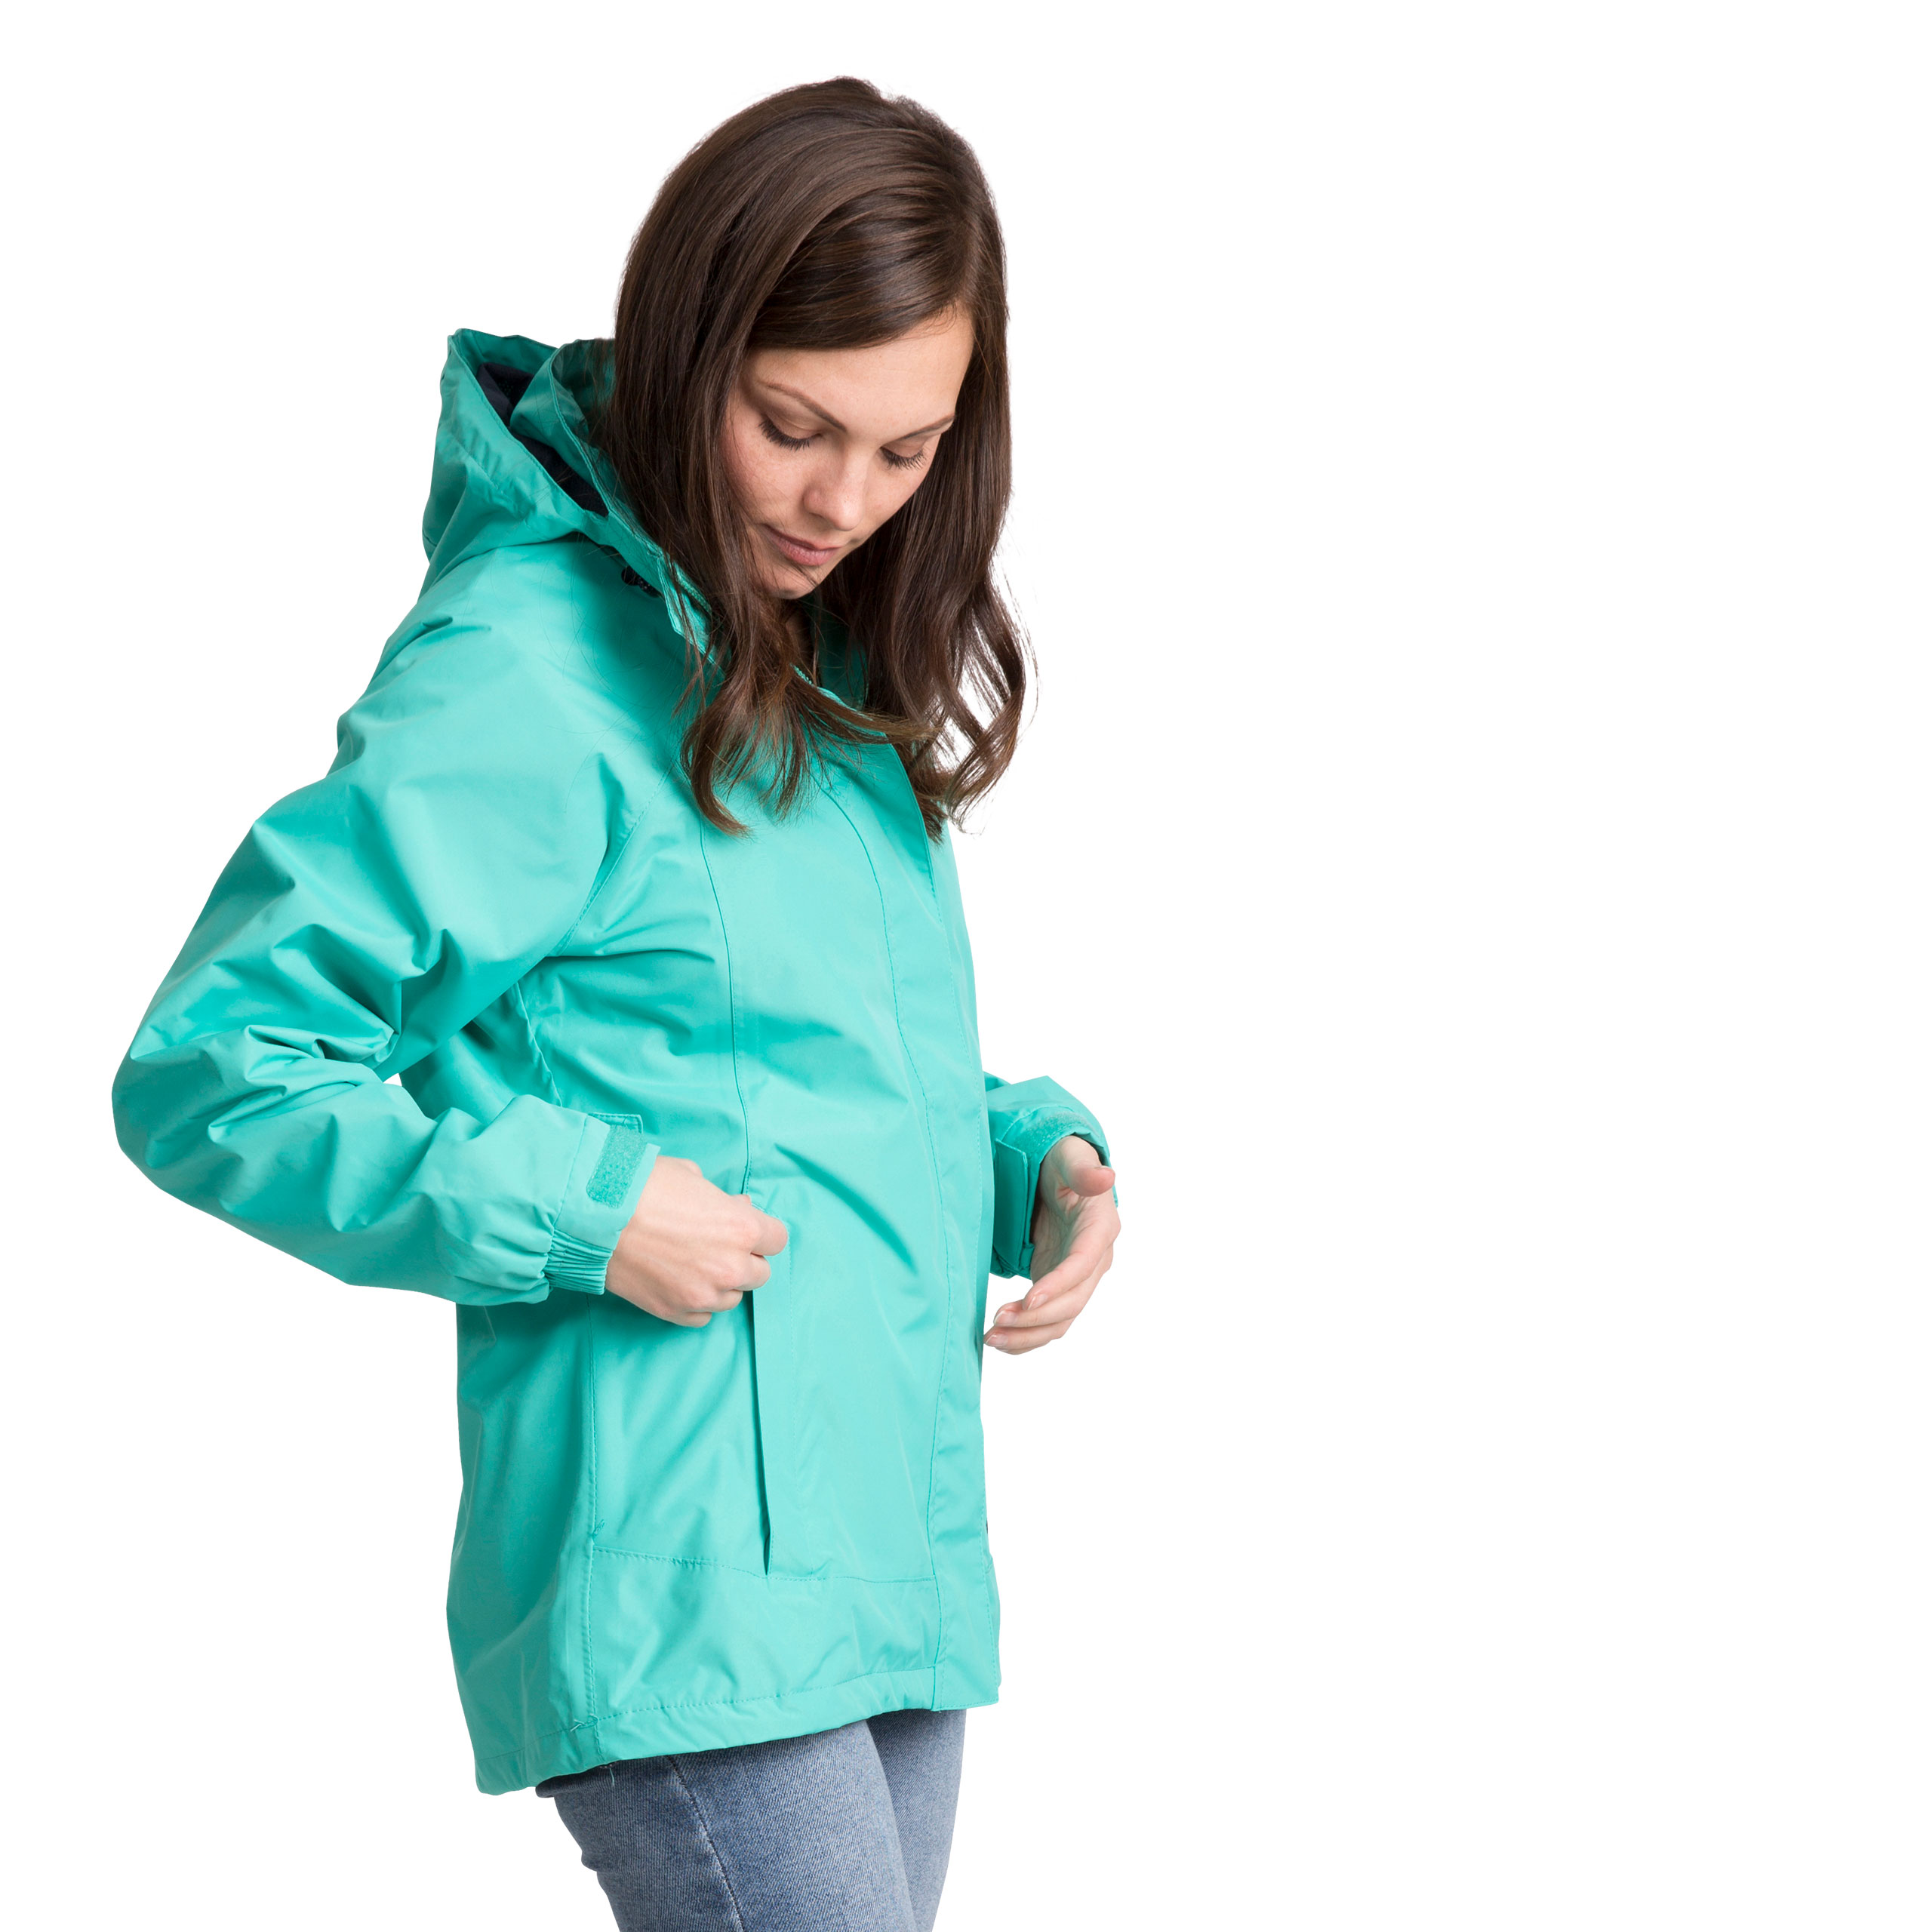 Trespass-Womens-Waterproof-Hooded-Jacket-Outdoor-Cycling-Raincoat thumbnail 18